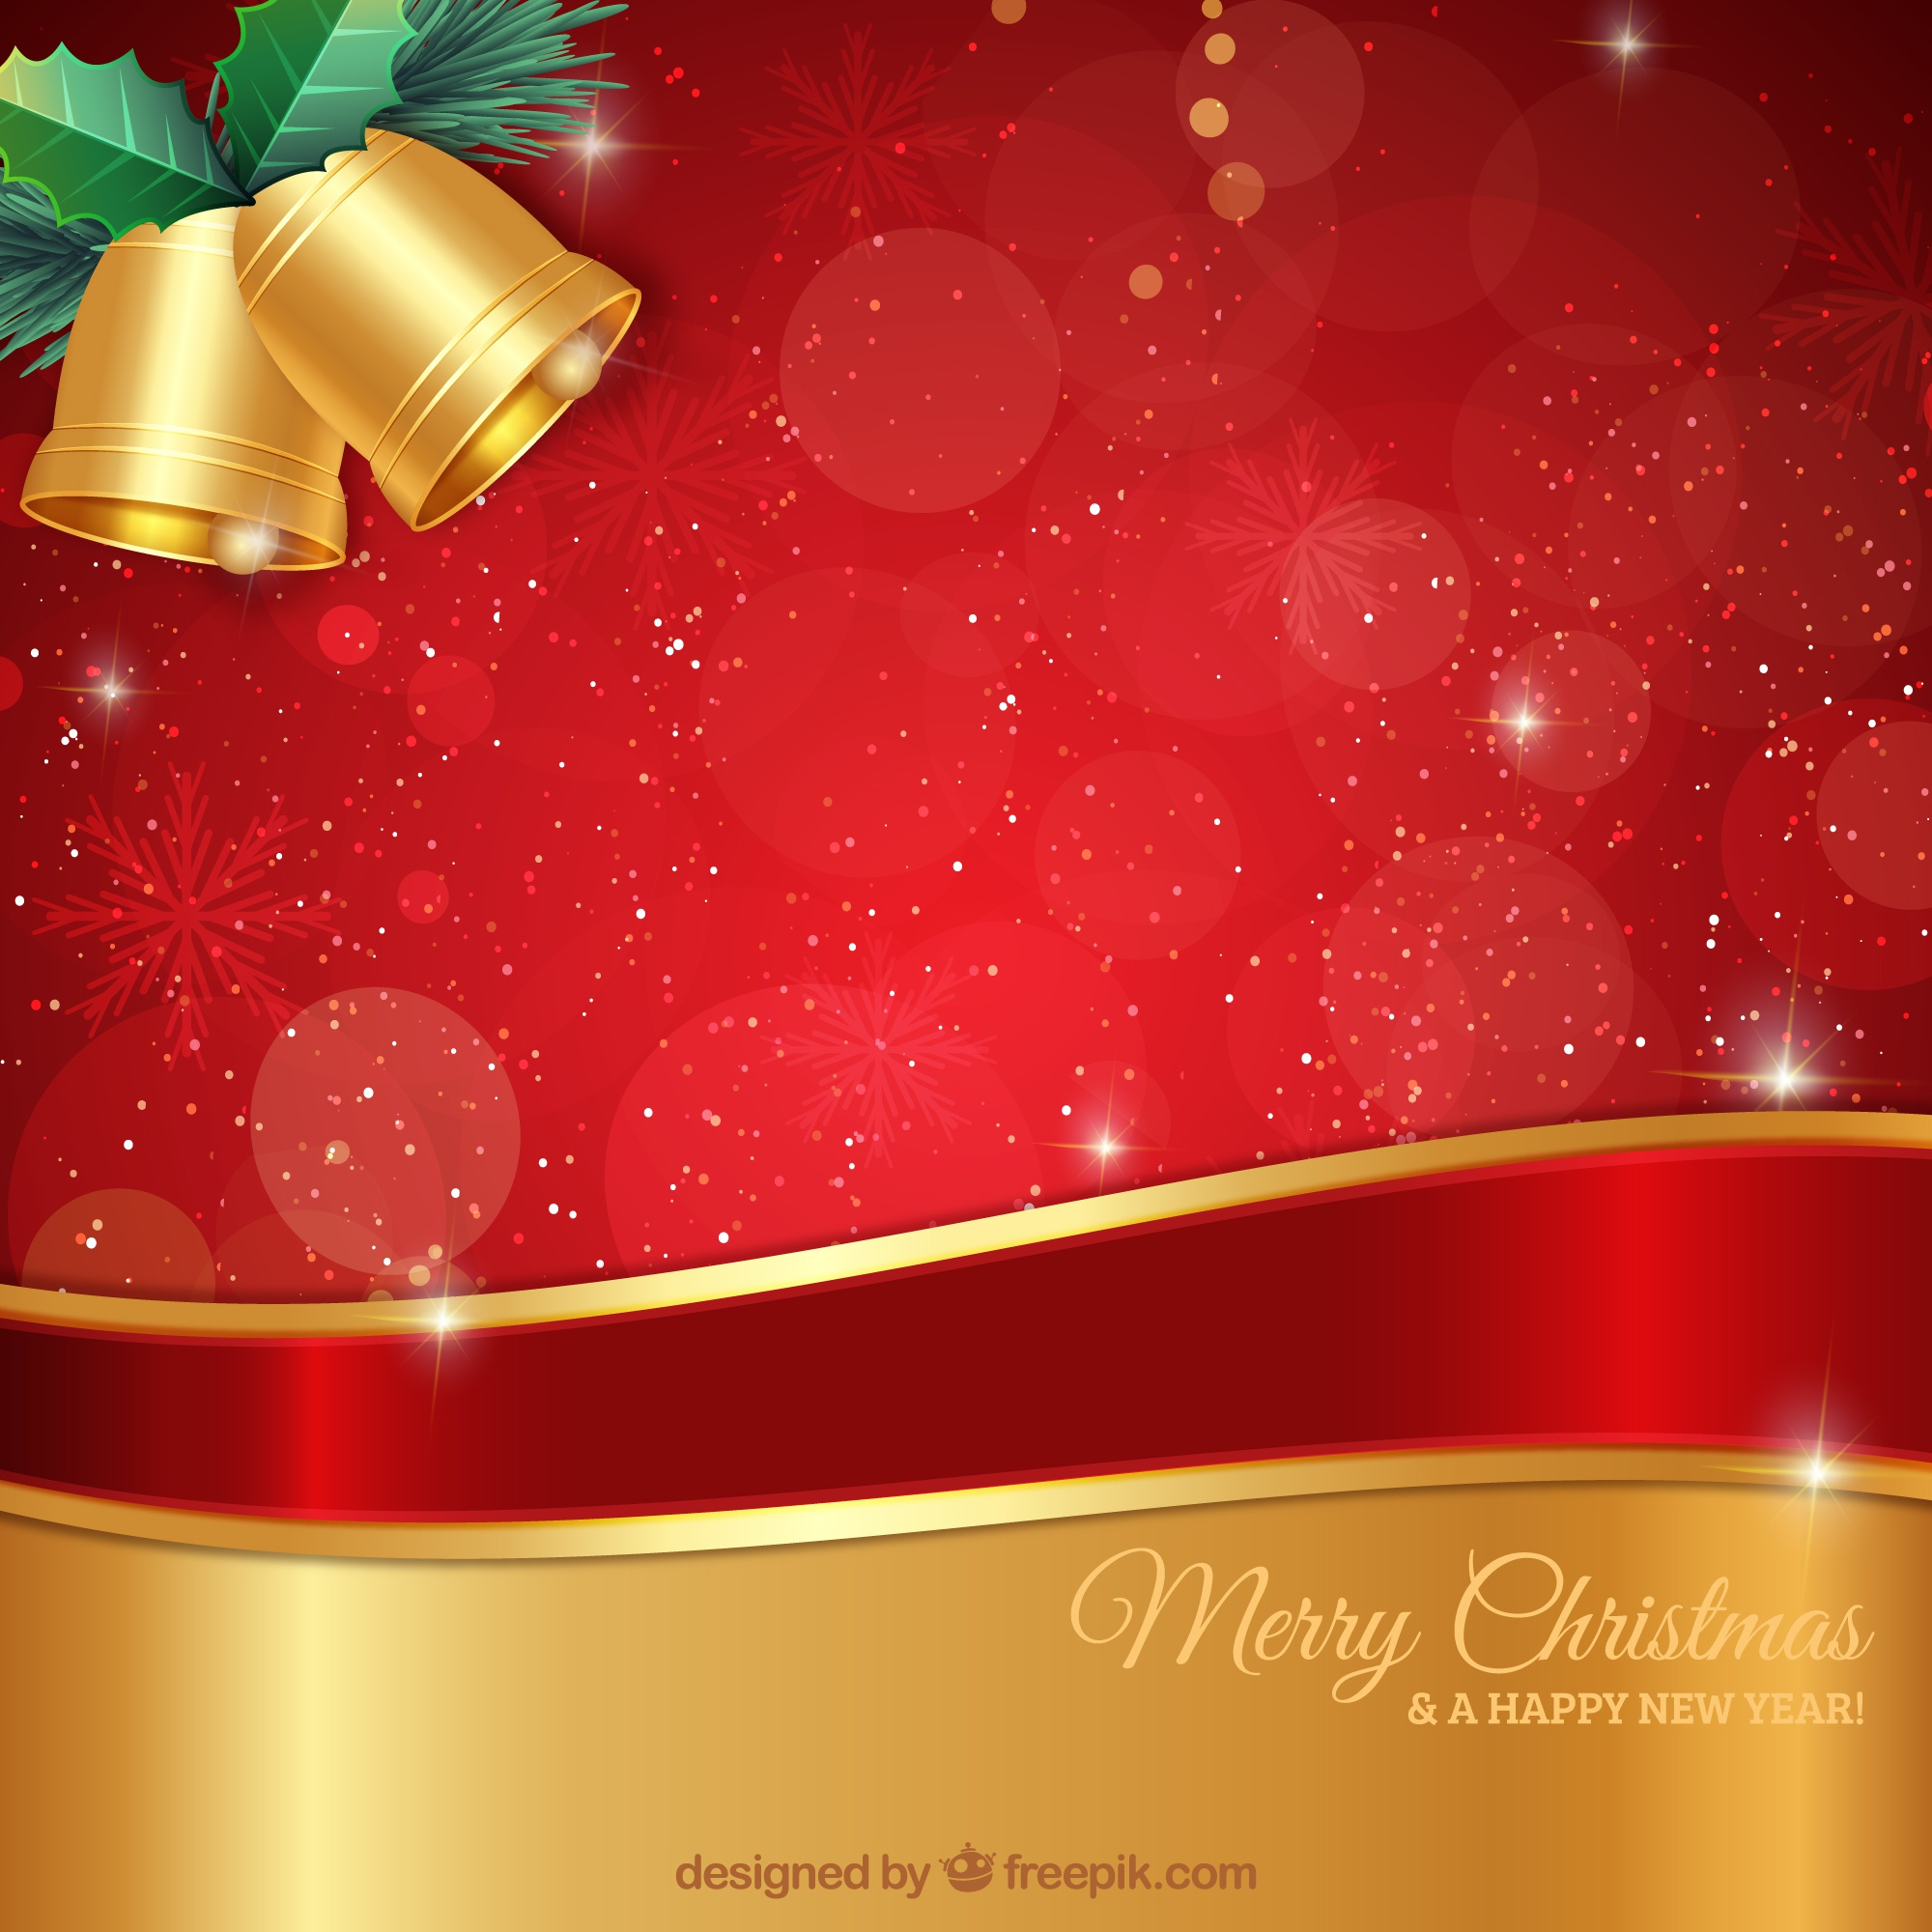 Elegant Christmas Greeting